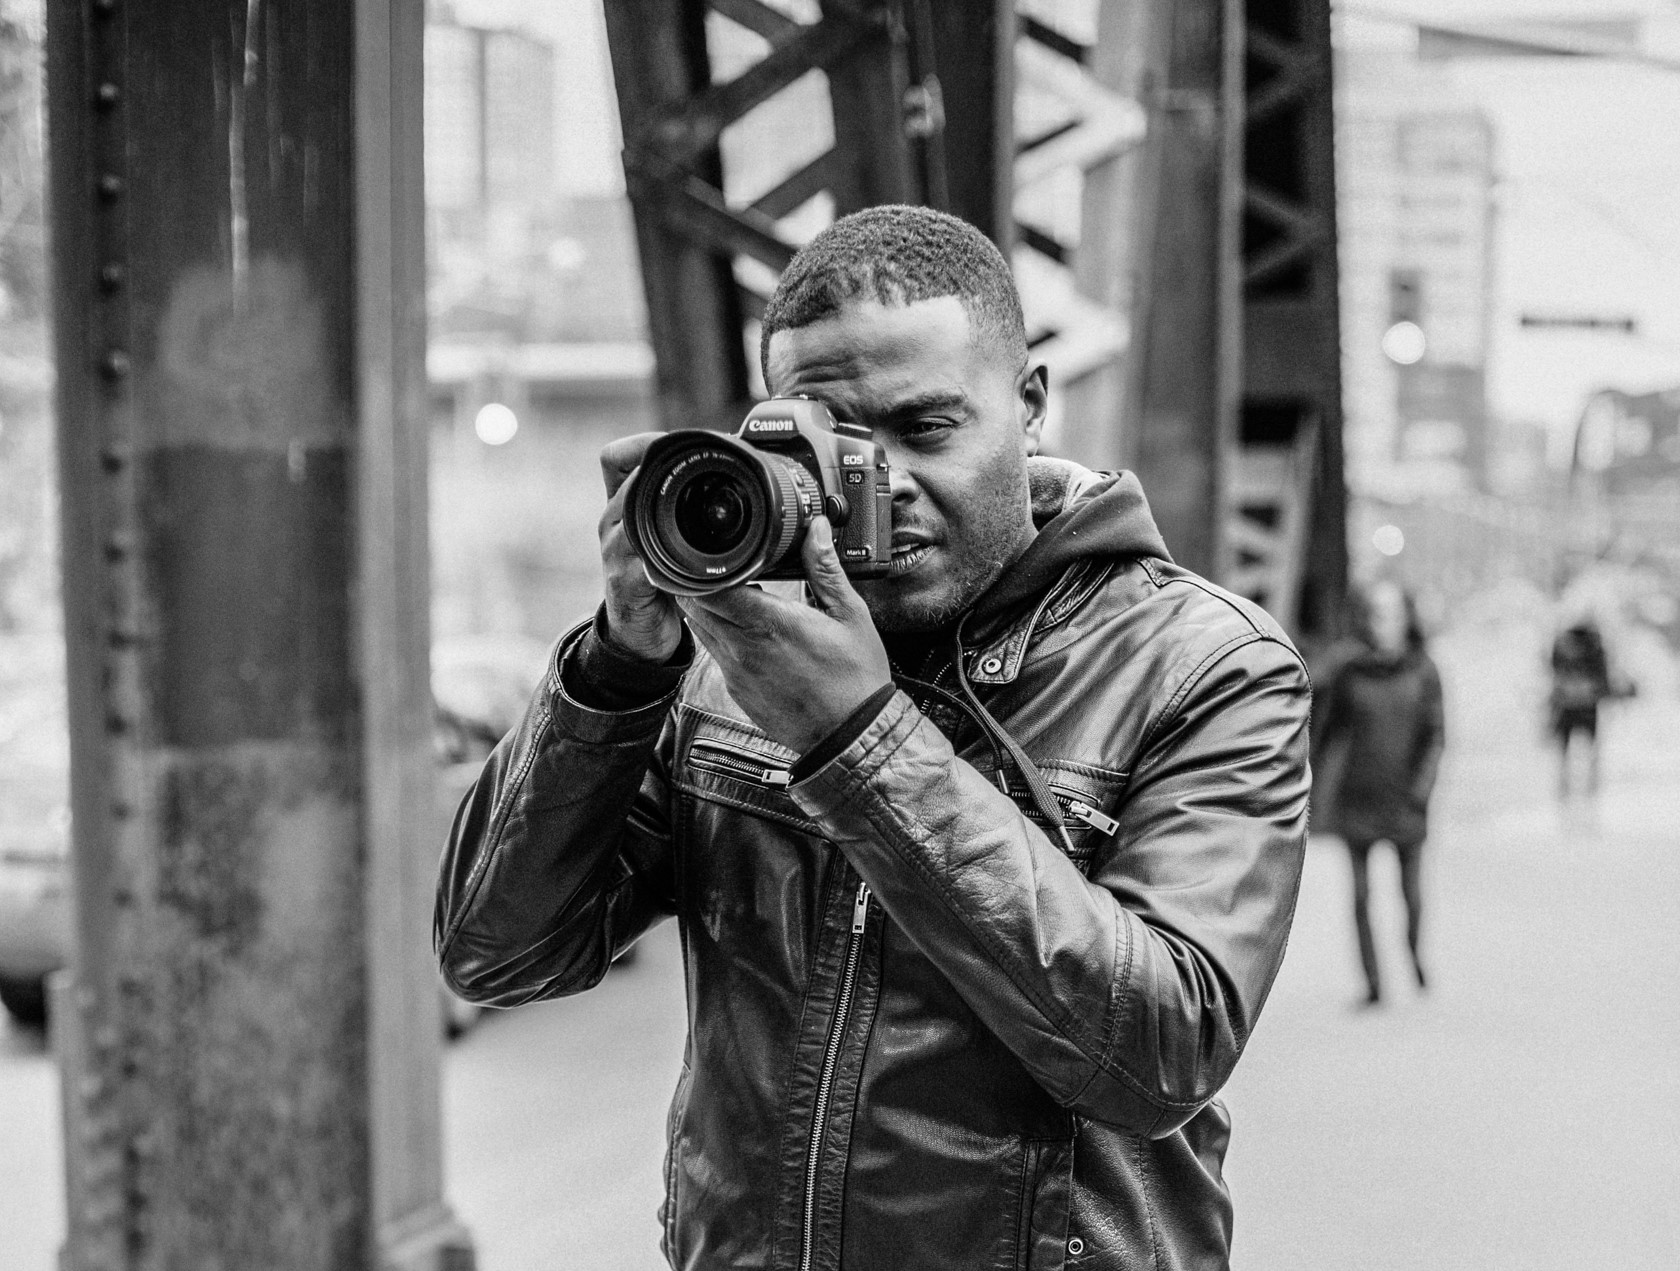 Black and White photo of Derrick Fagan, holding a Canon camera to his left eye, Owner of DF Media Productions a Video Production Company in Toronto, Canada